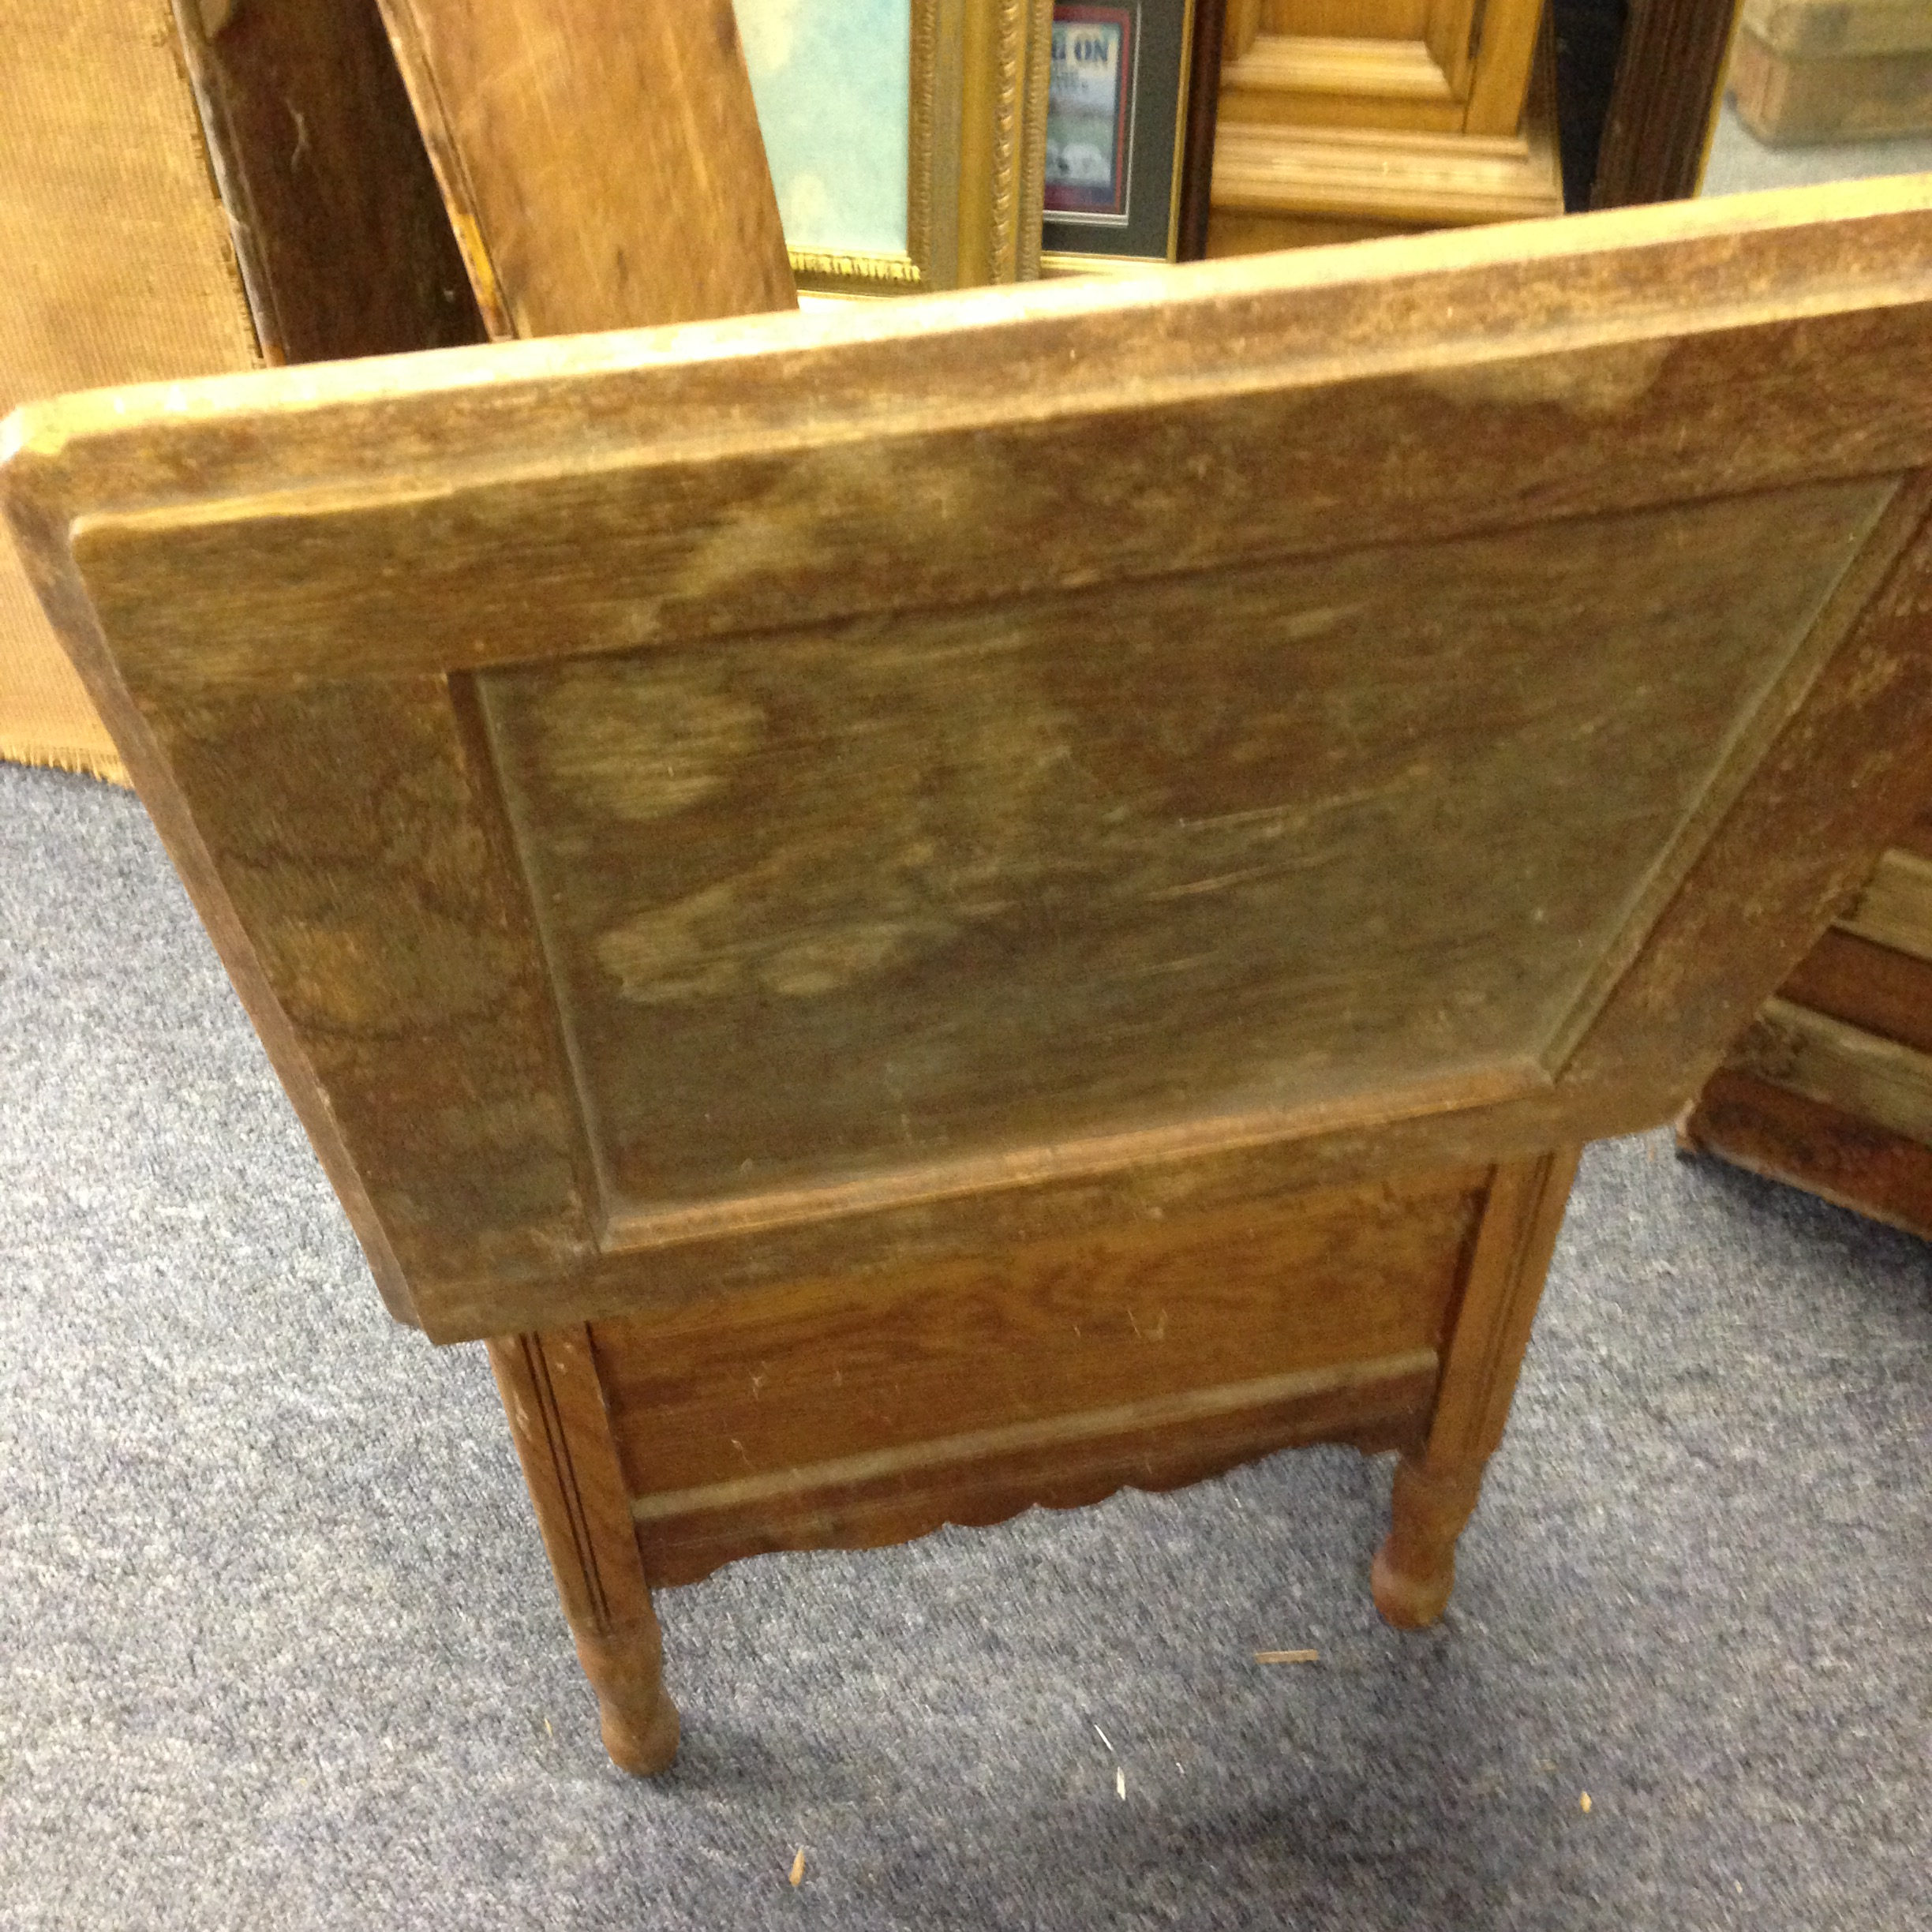 SOLD! Chamber Pot Commode (or Toilet Cabinet) | Heritage Collectibles